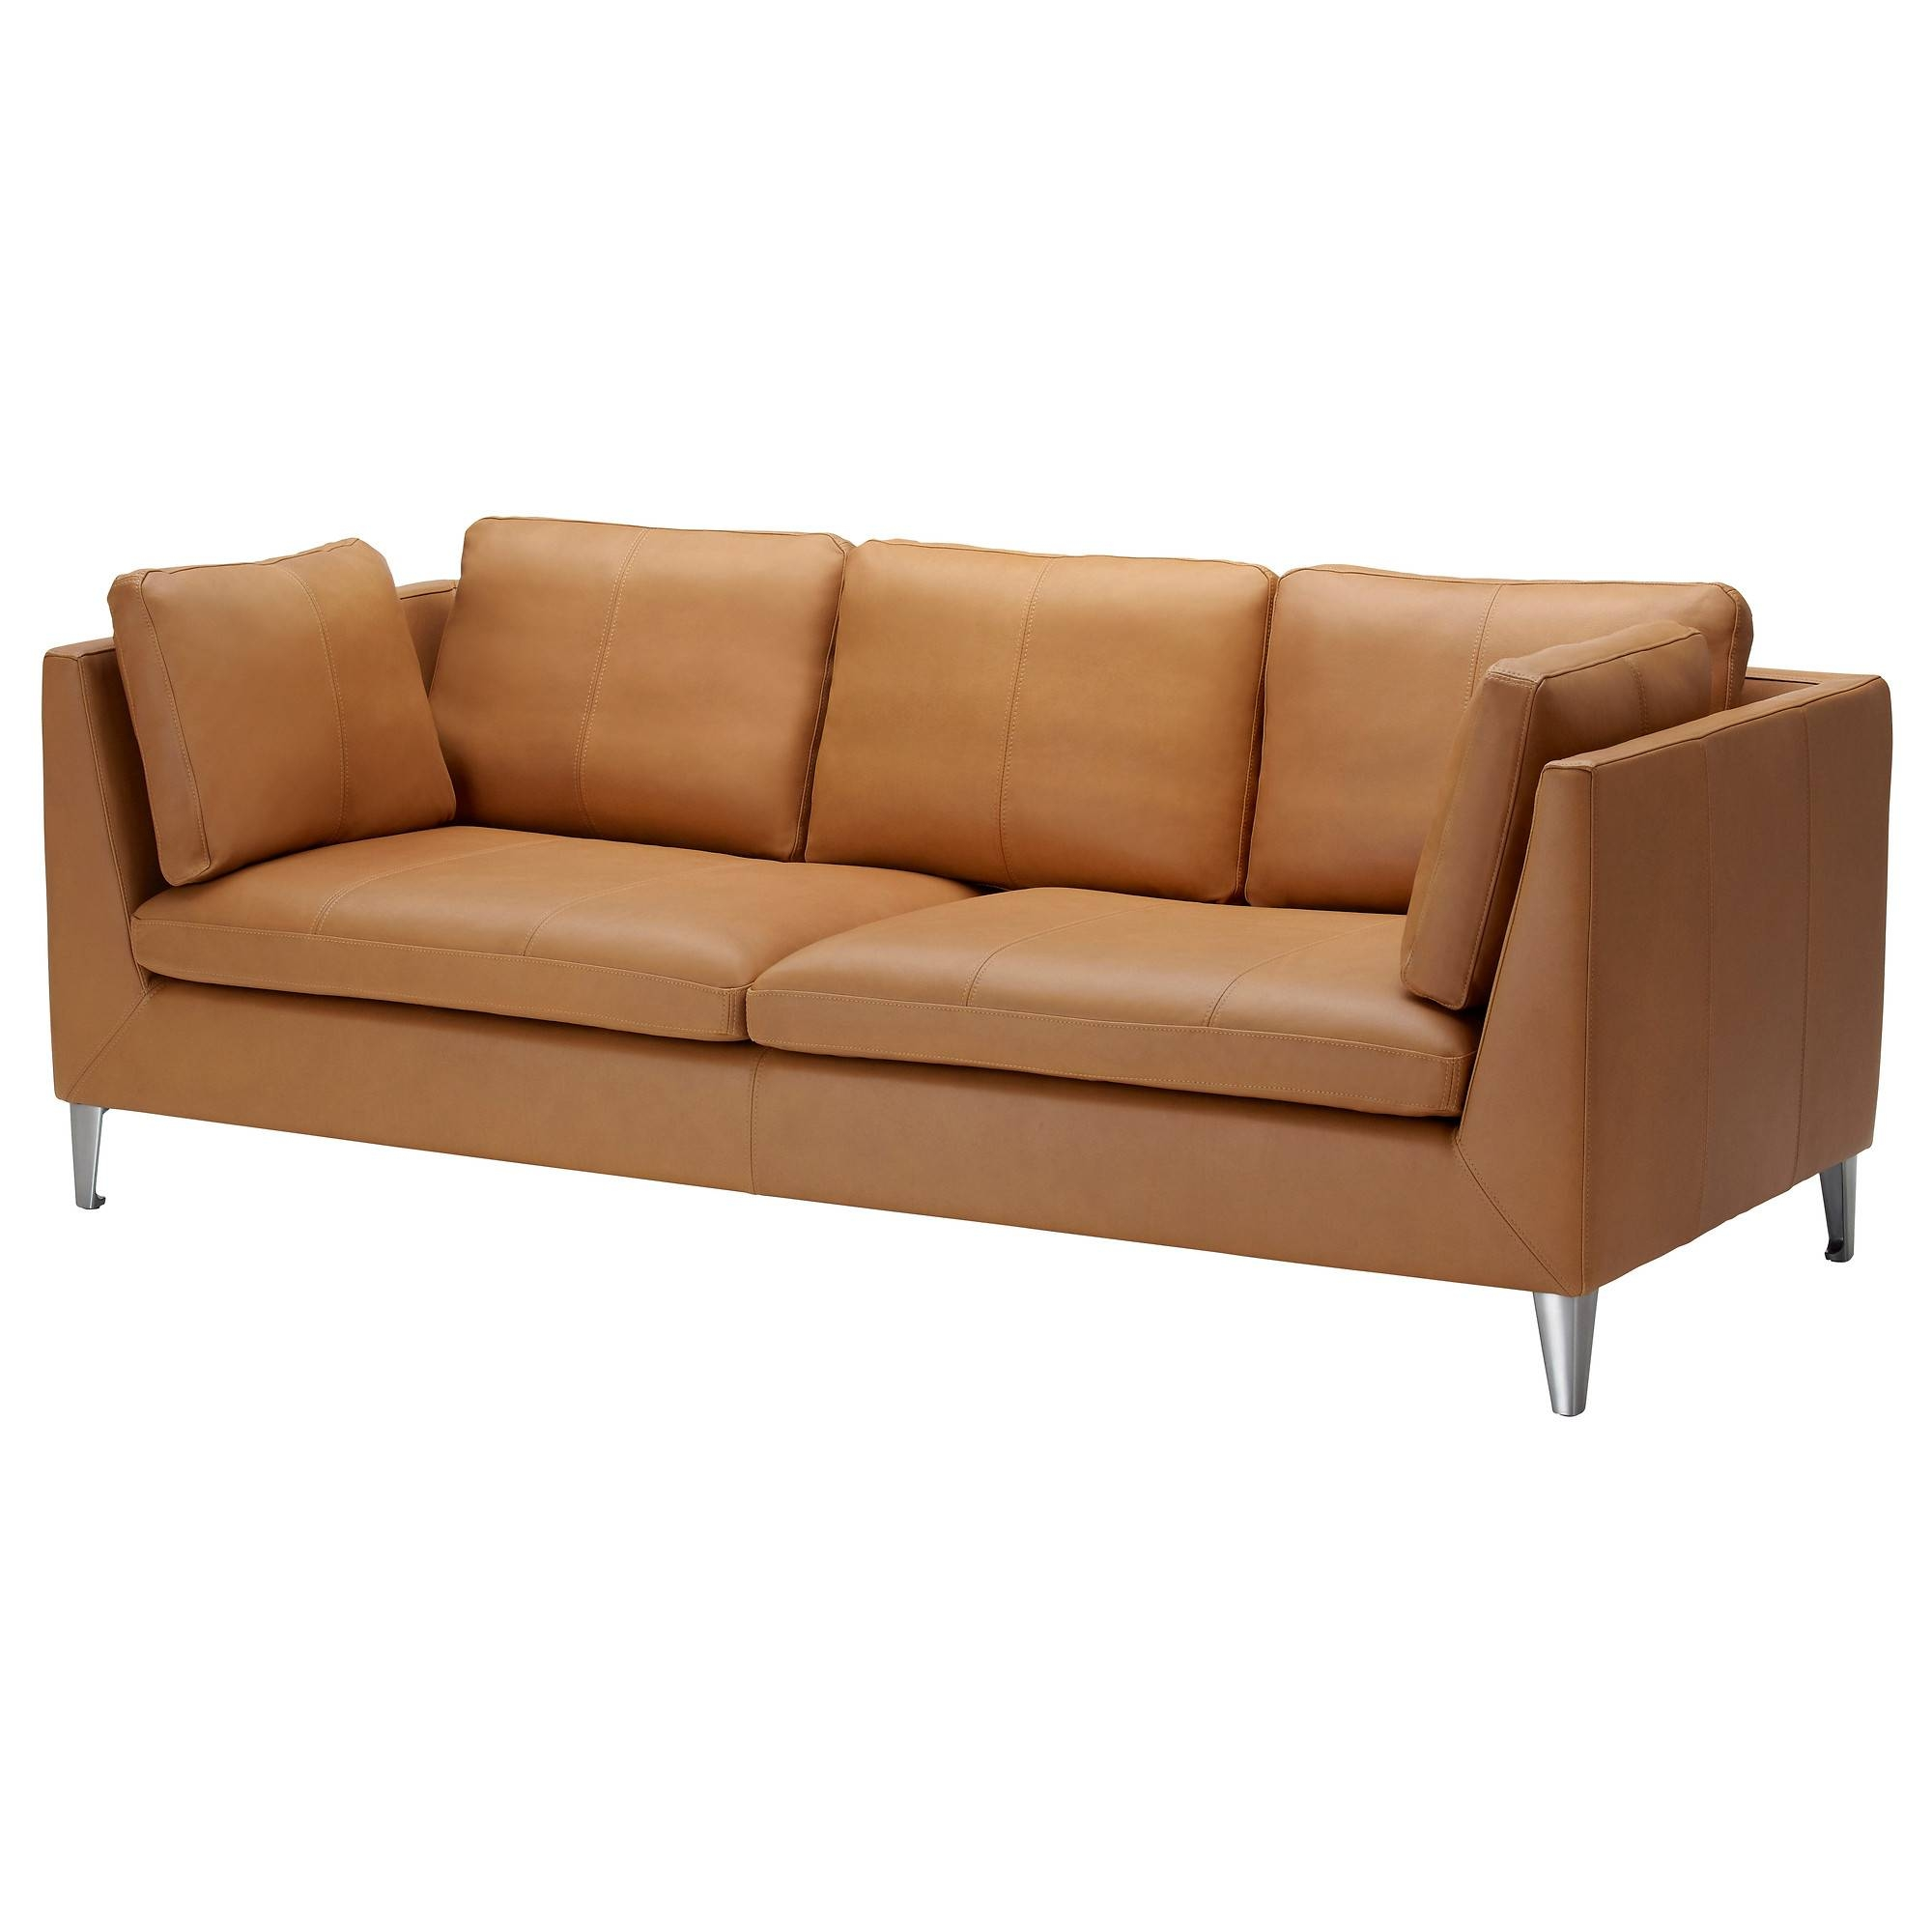 Leather & Faux Leather Couches, Chairs & Ottomans – Ikea Throughout Camel Colored Leather Sofas (View 9 of 15)